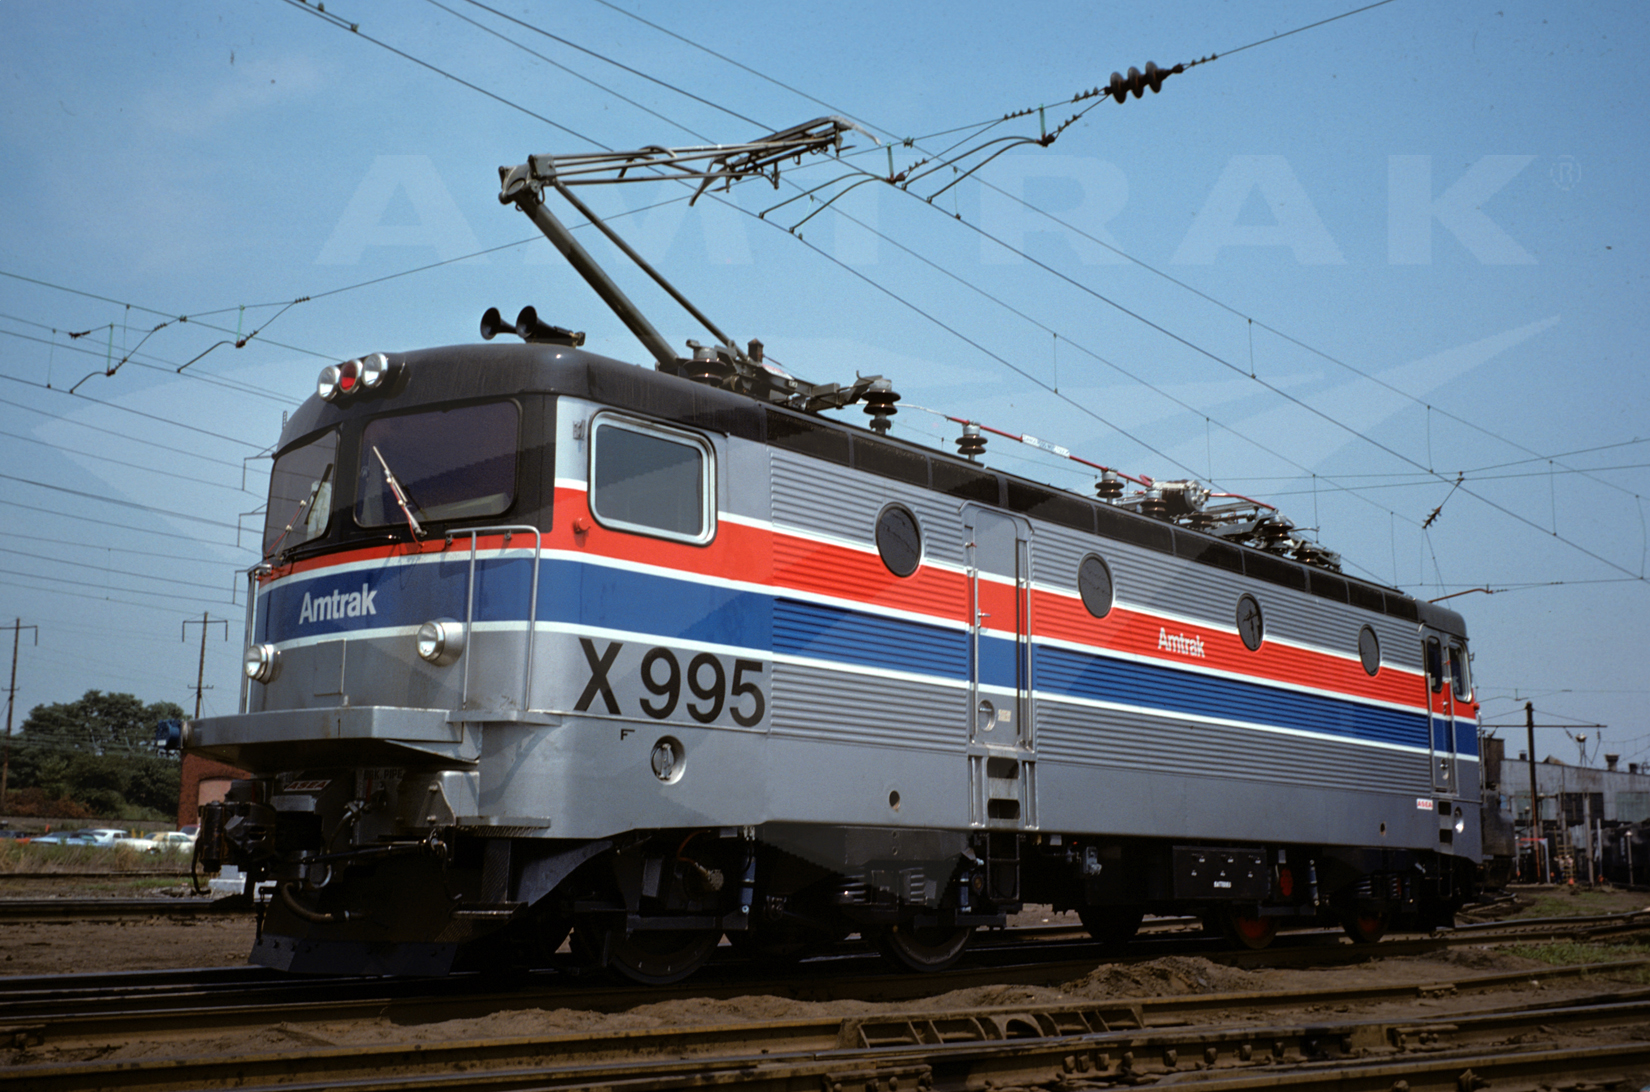 Amtrak No. X995 test locomotive, late 1970s. — Amtrak ...